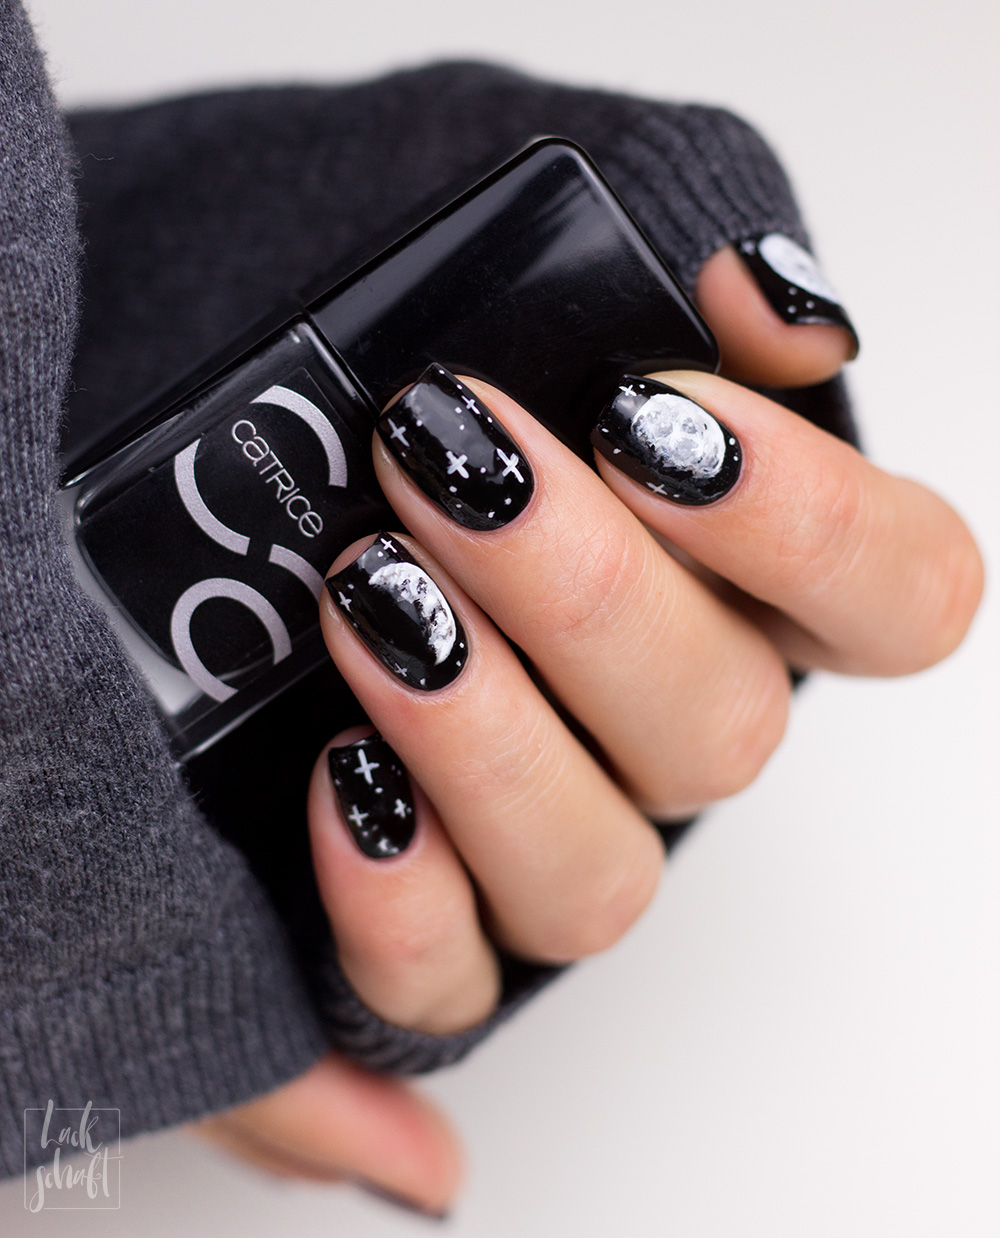 Copycat-Moon-Mond-Nailart-Freehand-Black-and-White-3